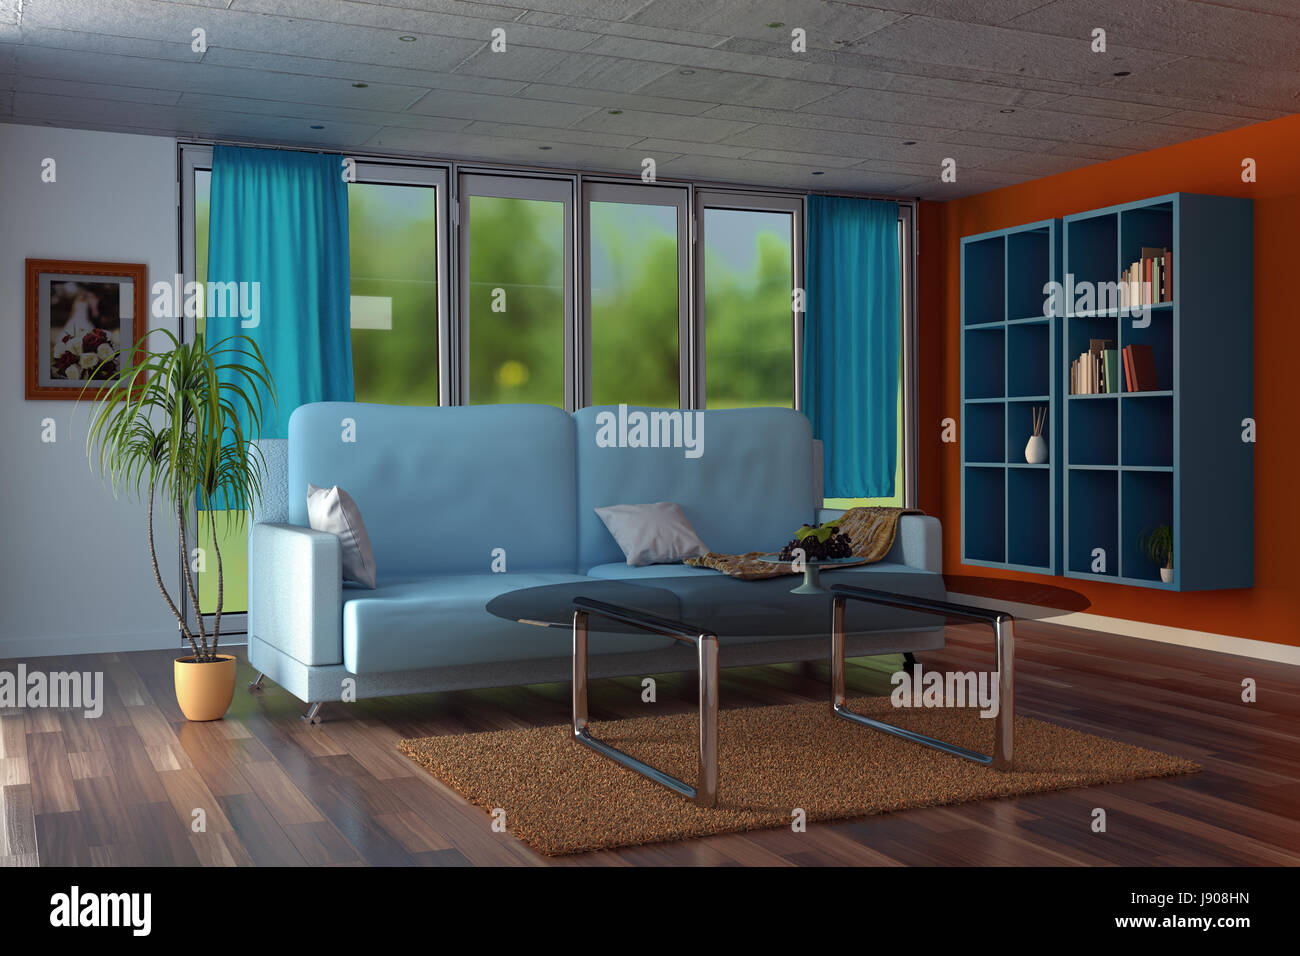 3d Rendering Of Modern Living Room With Orange Walls And